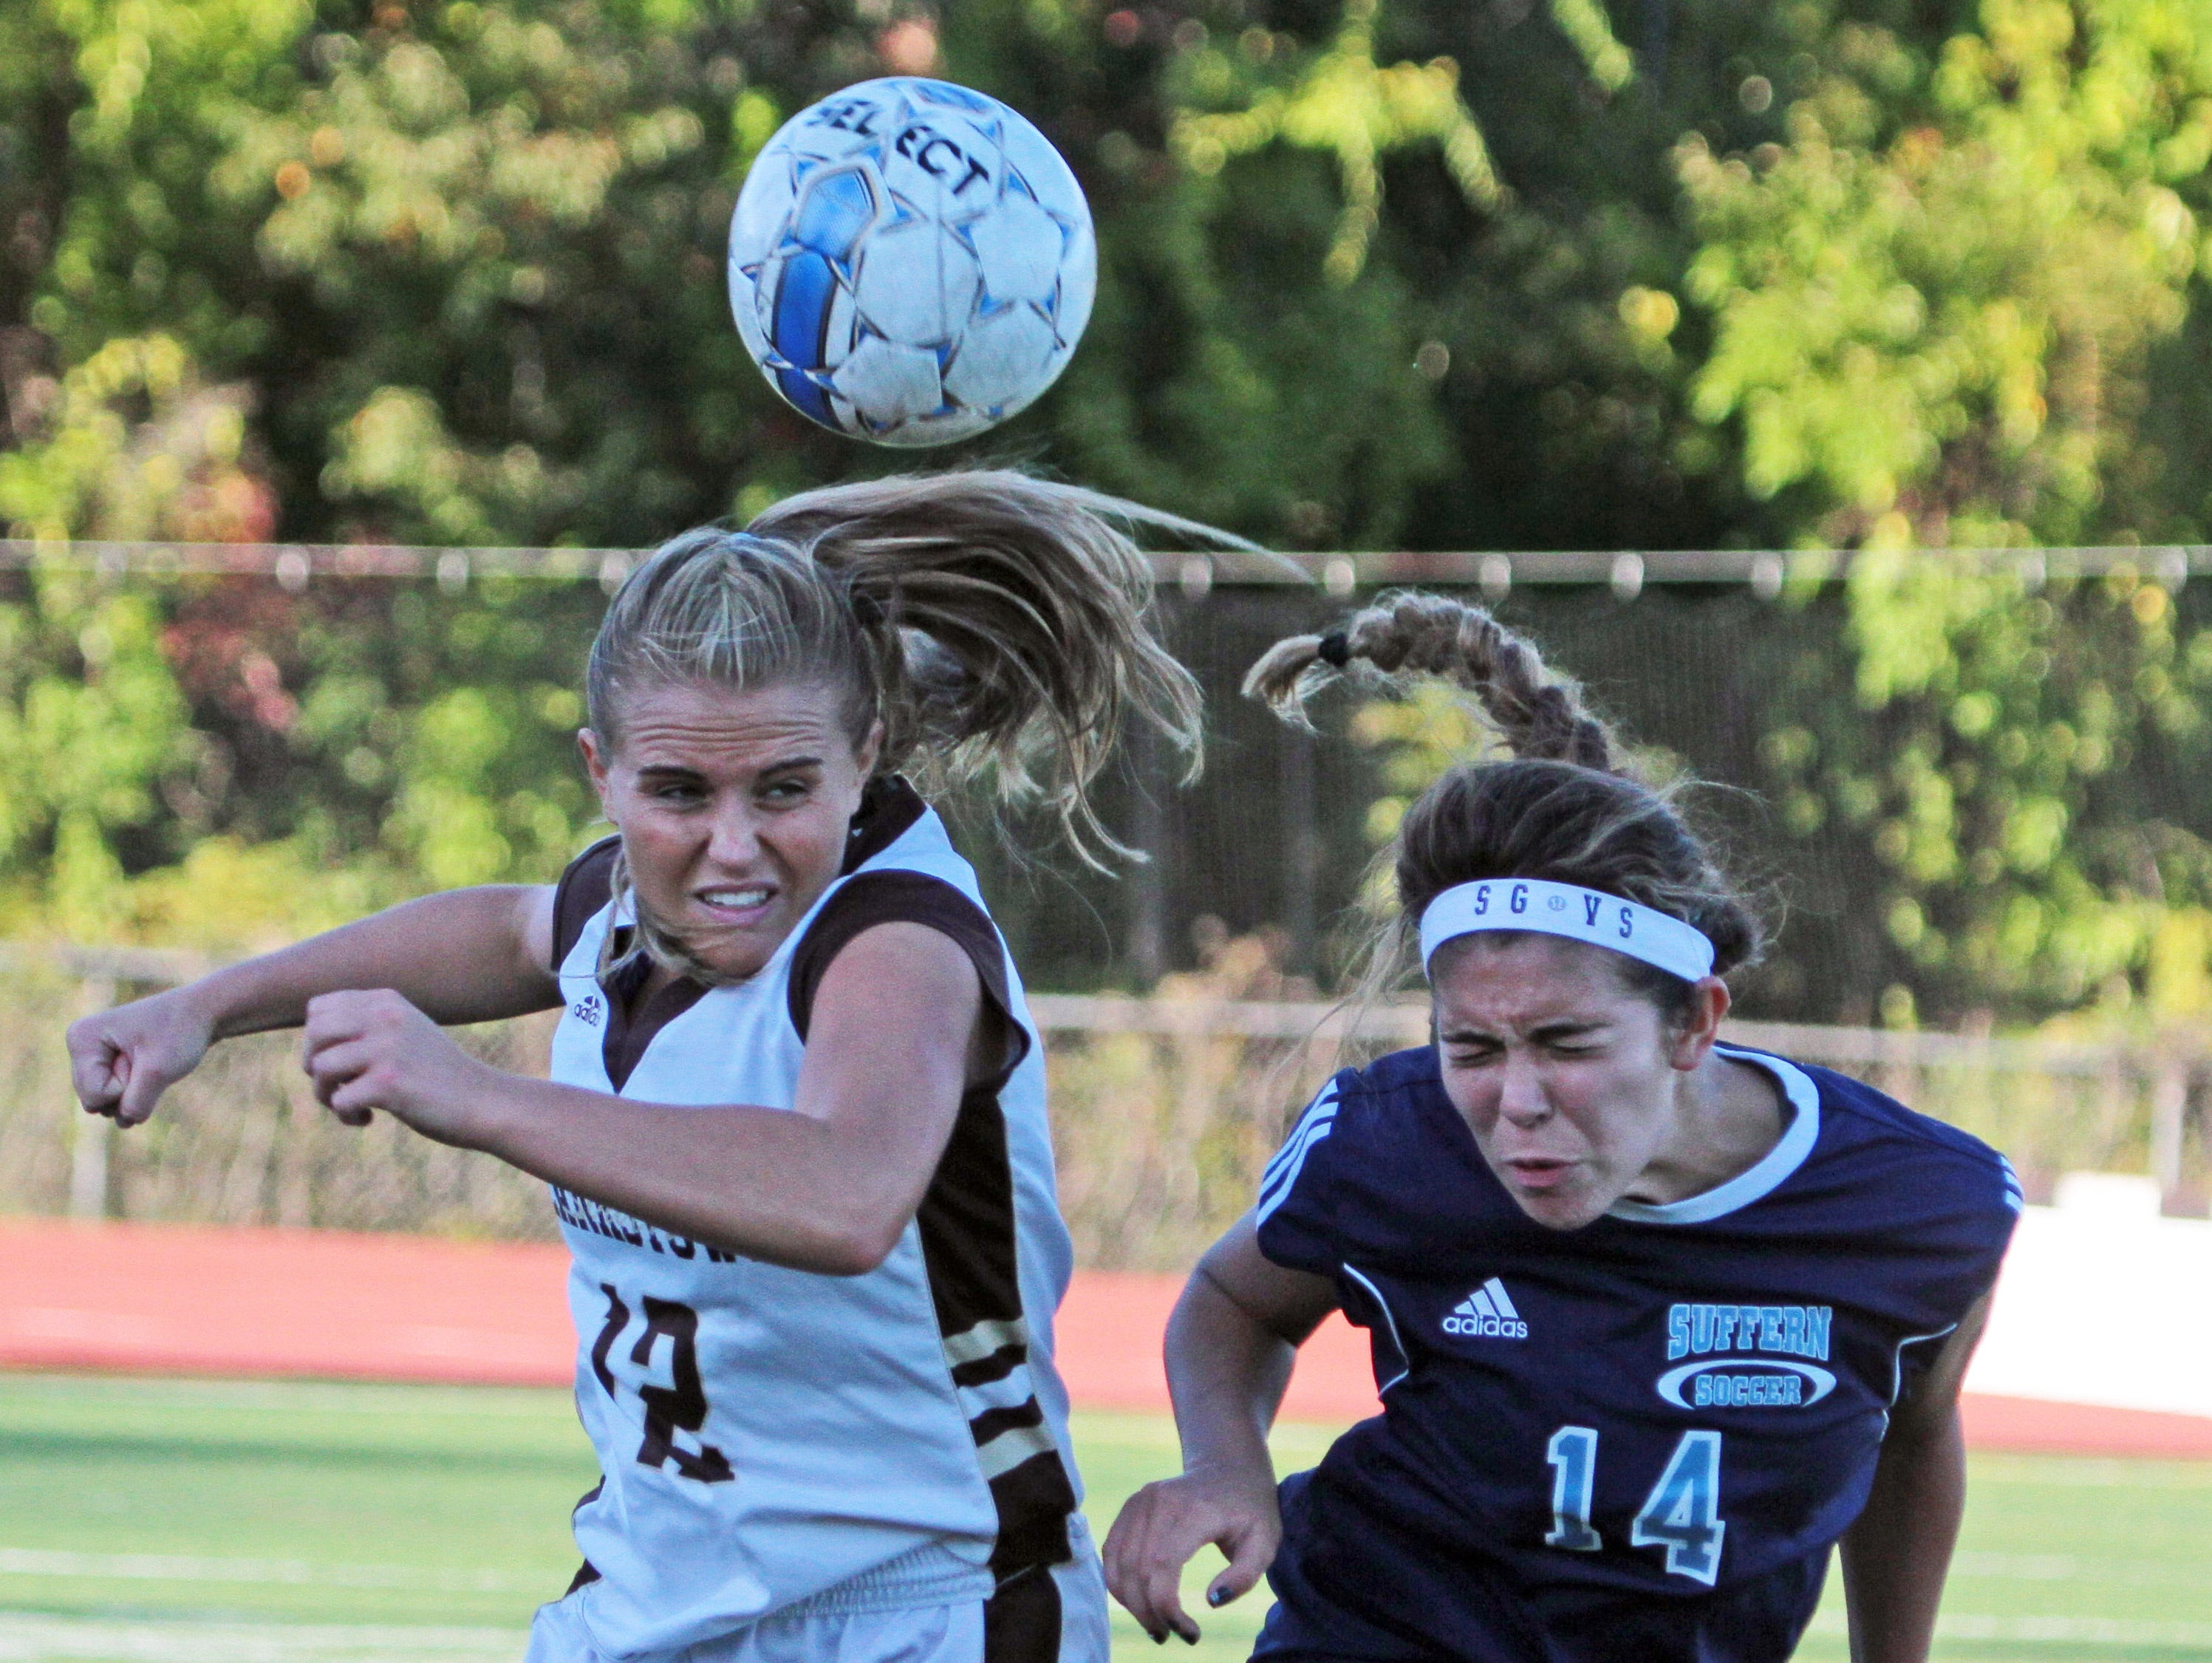 Clarkstown South's Danielle Gillespie and Suffern's Tatiana Cruz battle for the ball during a varsity soccer game at Clarkstown South High School Oct. 6, 2015. Clarkstown South handed Suffern it's first loss of the season with a 4-1 victory.